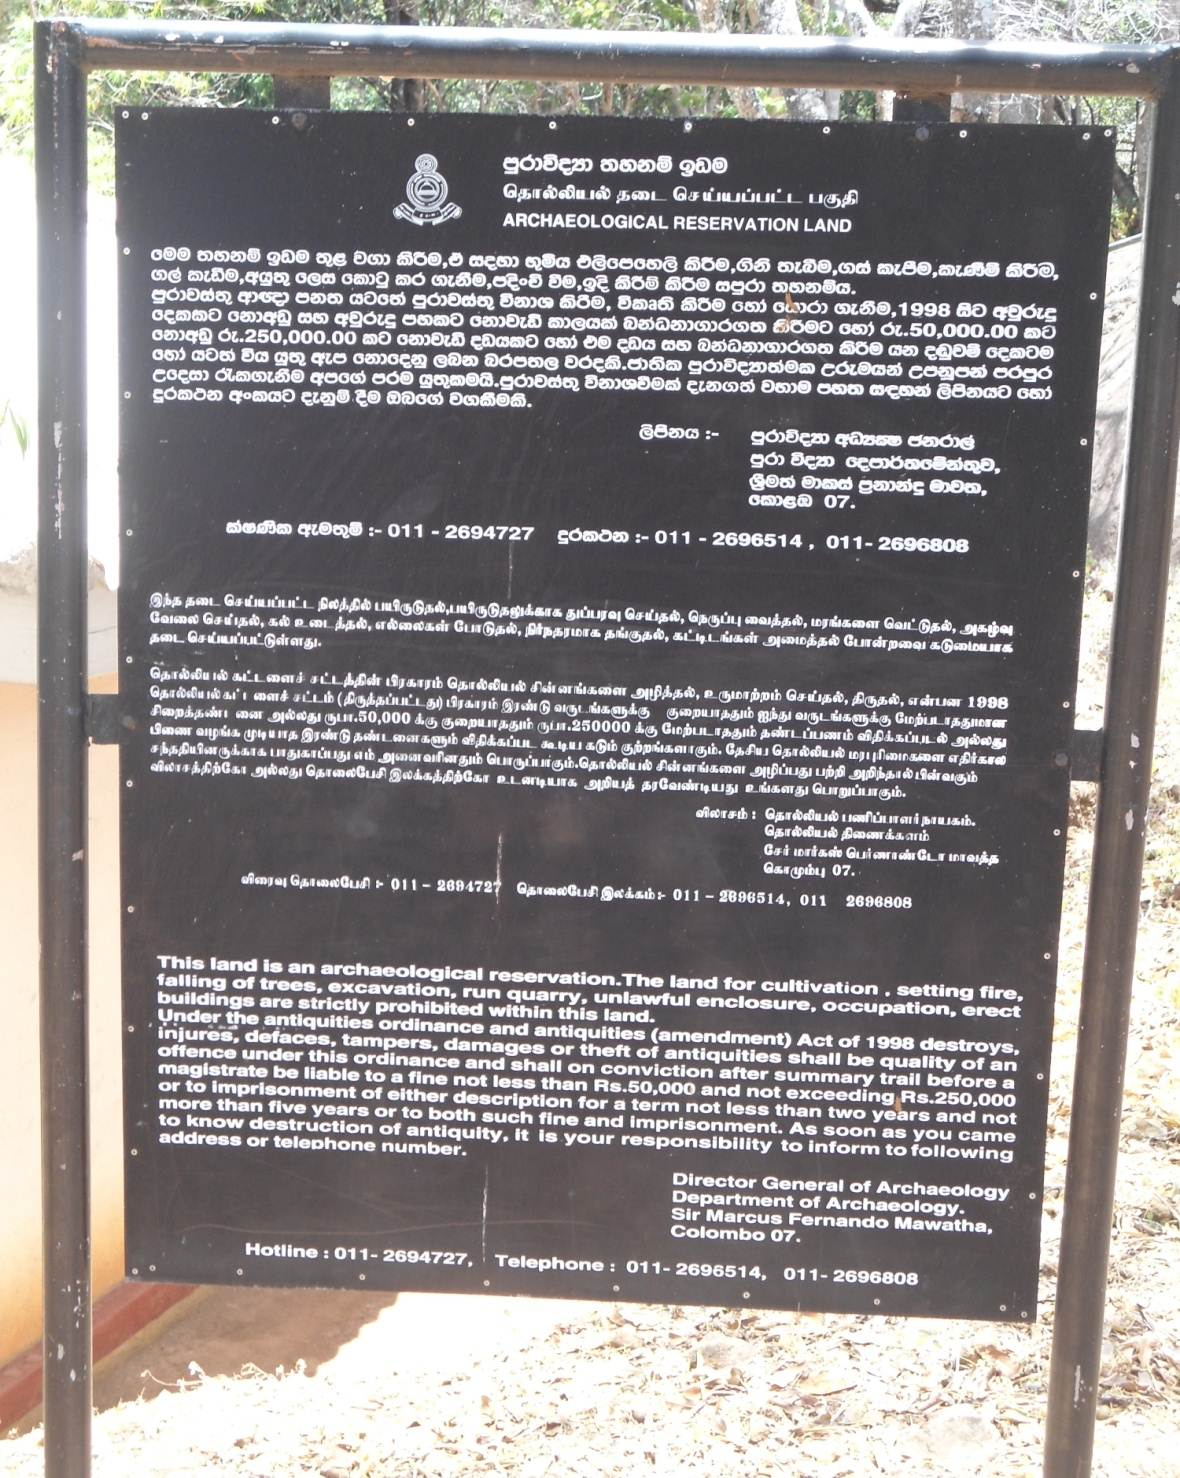 Another plaque near the mosque